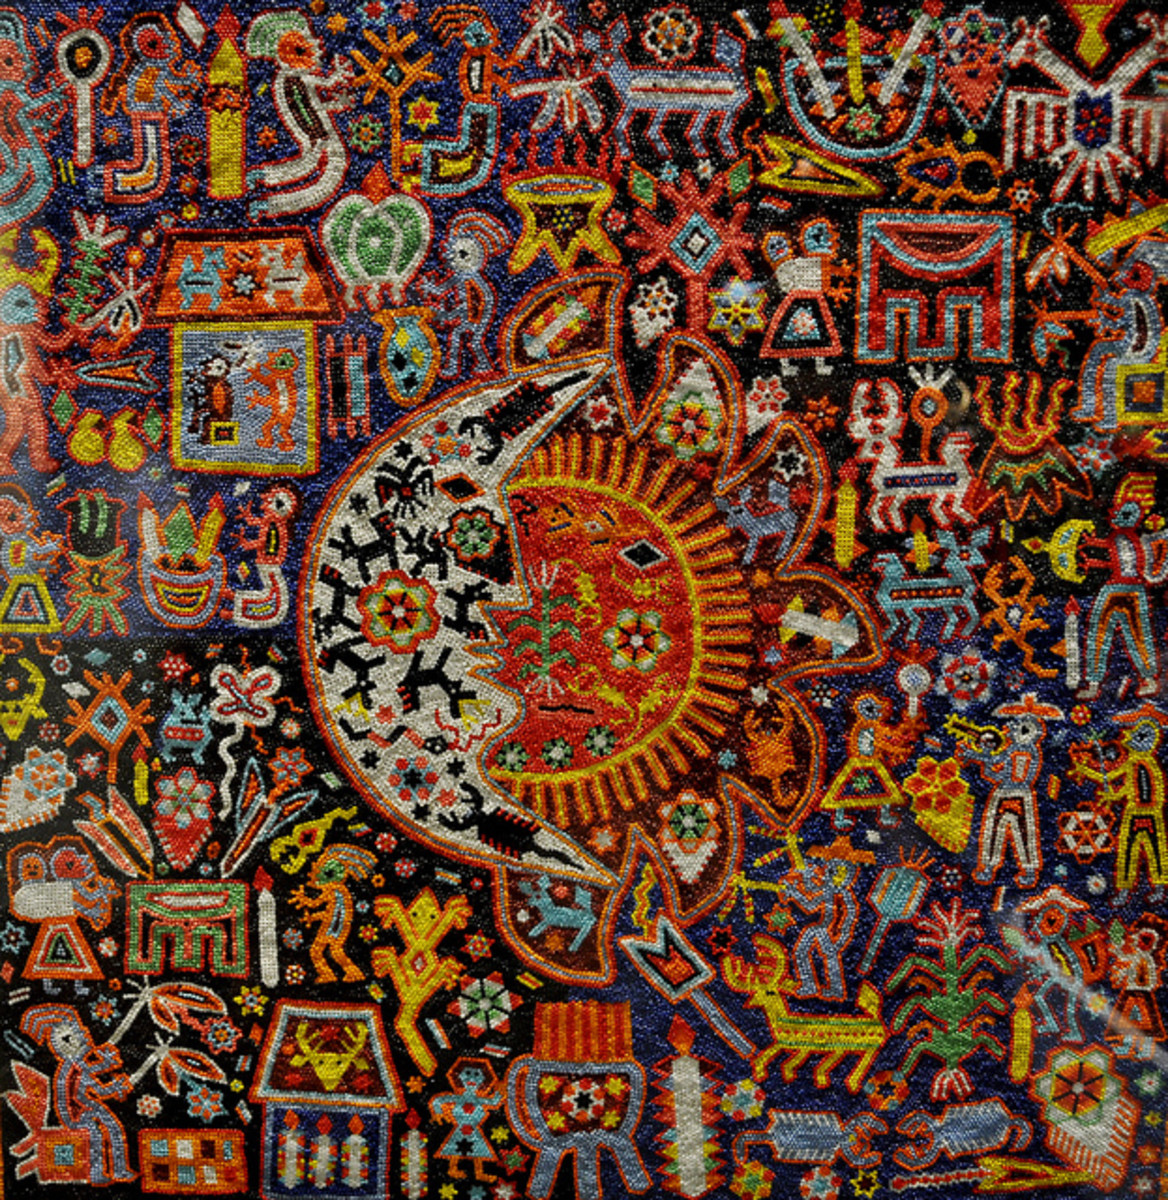 Huichol beaded art piece.